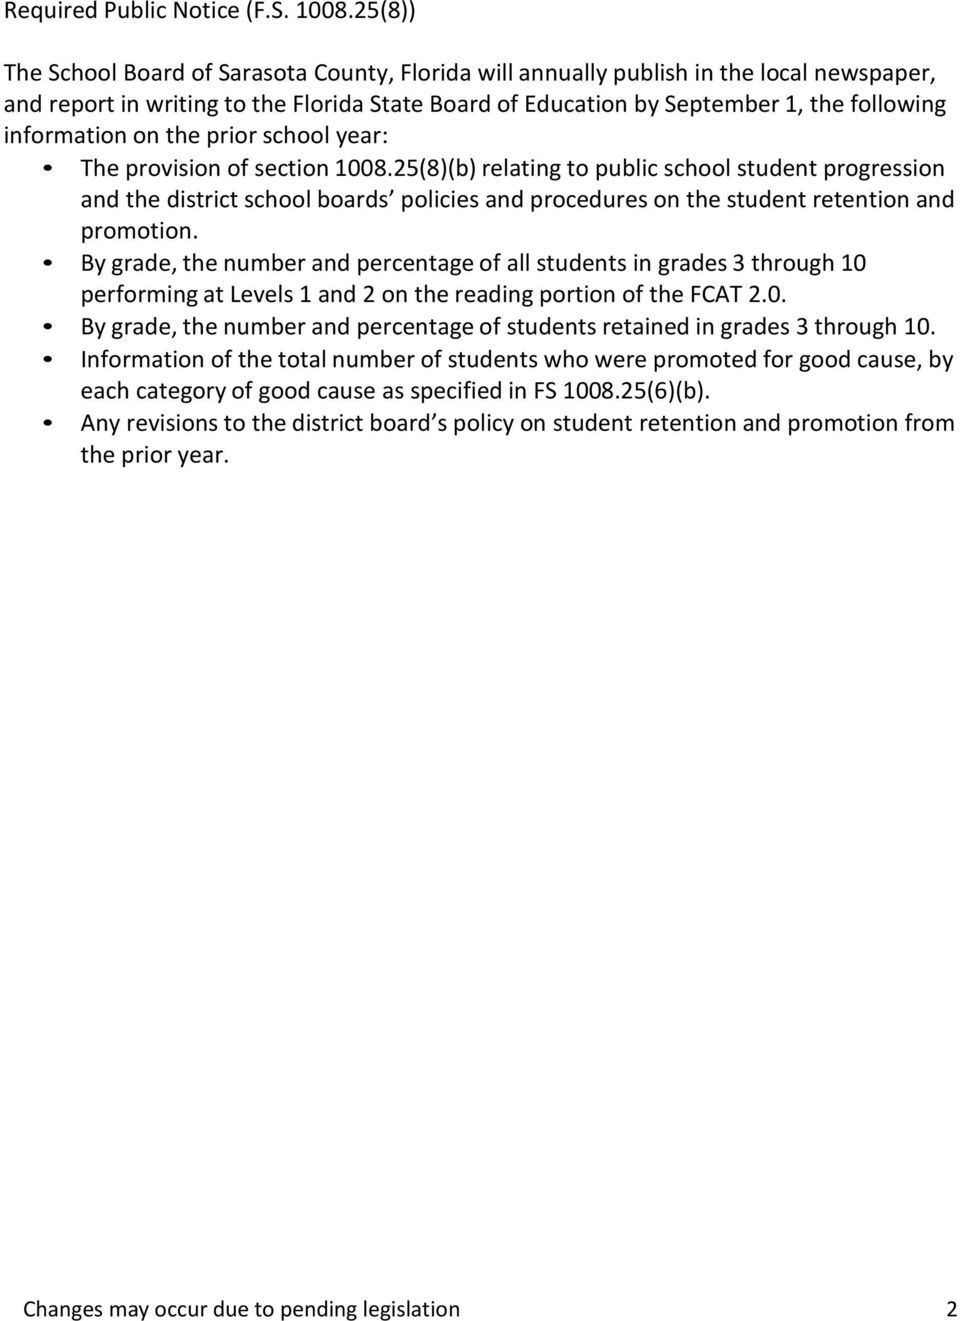 information on the prior school year: The provision of section 1008.